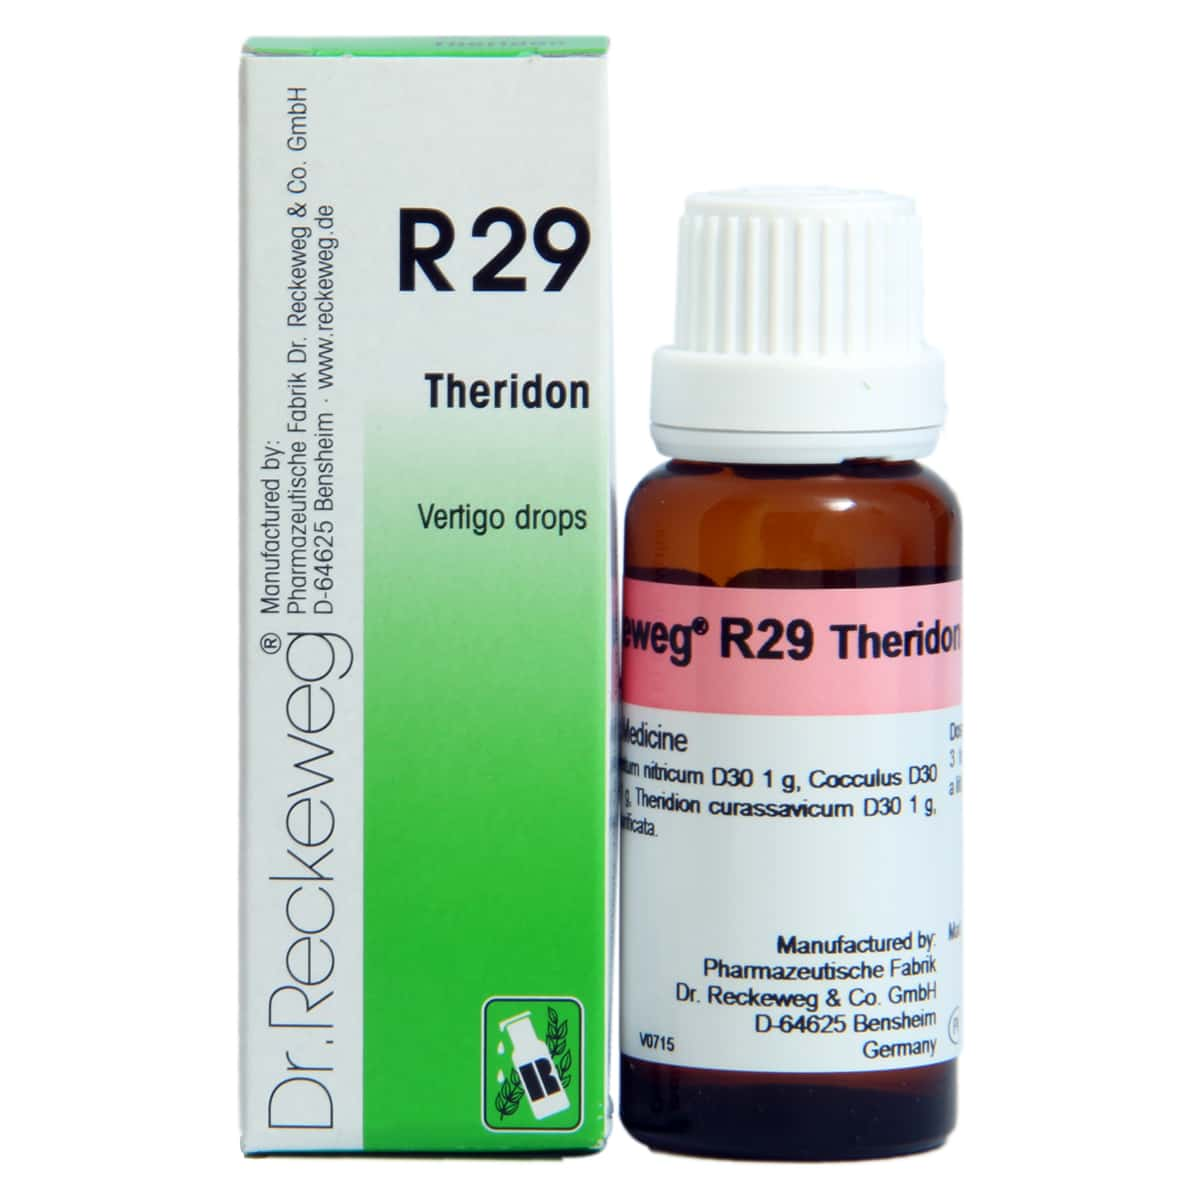 R29-Homeopathicology.com